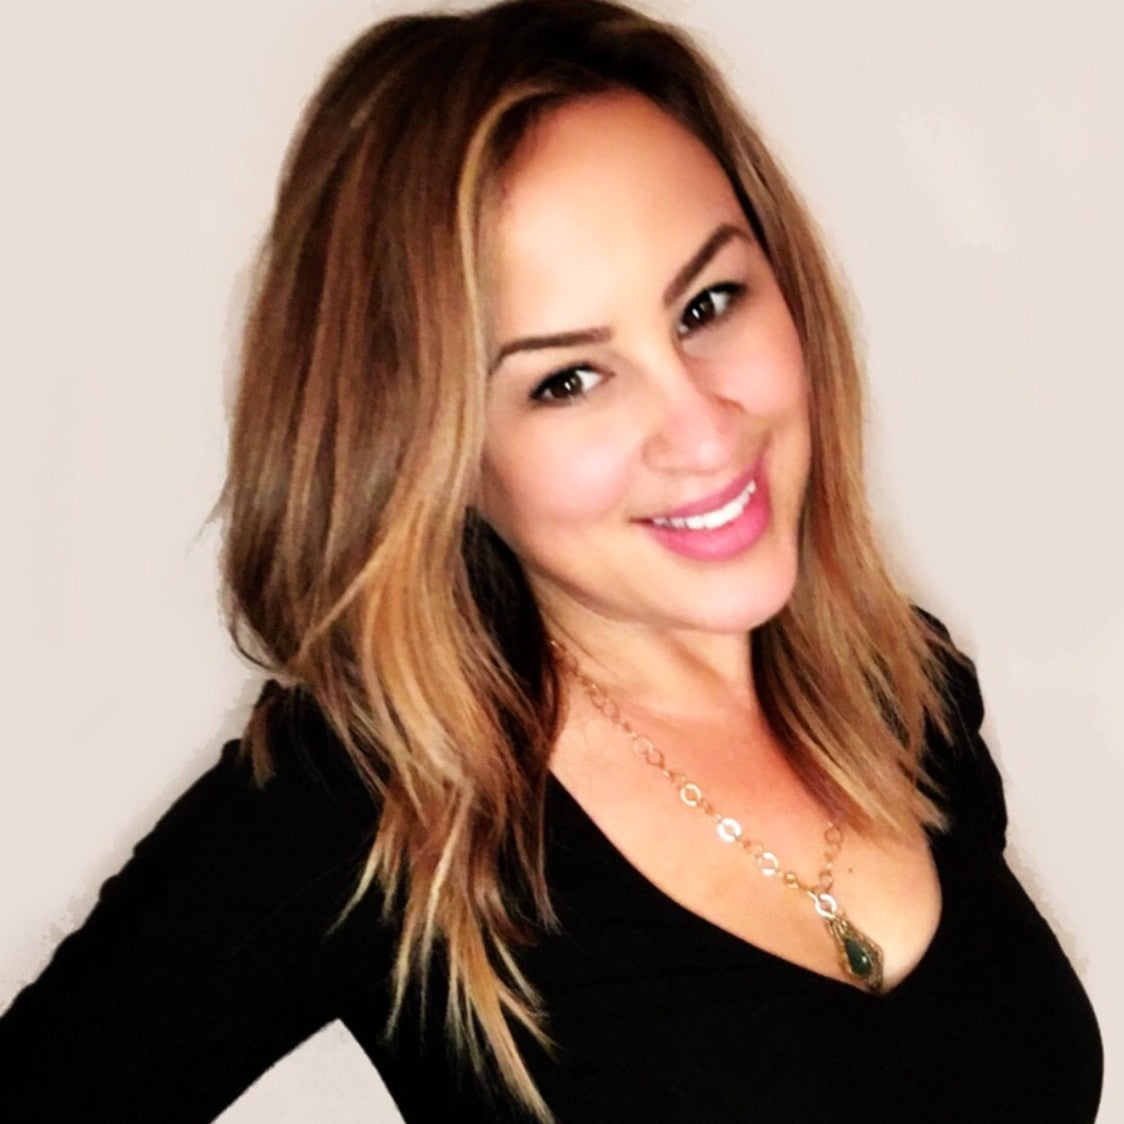 STYLIST SATURDAY: MEET BRANDI CAPUTA IN NEWPORT BEACH, CA